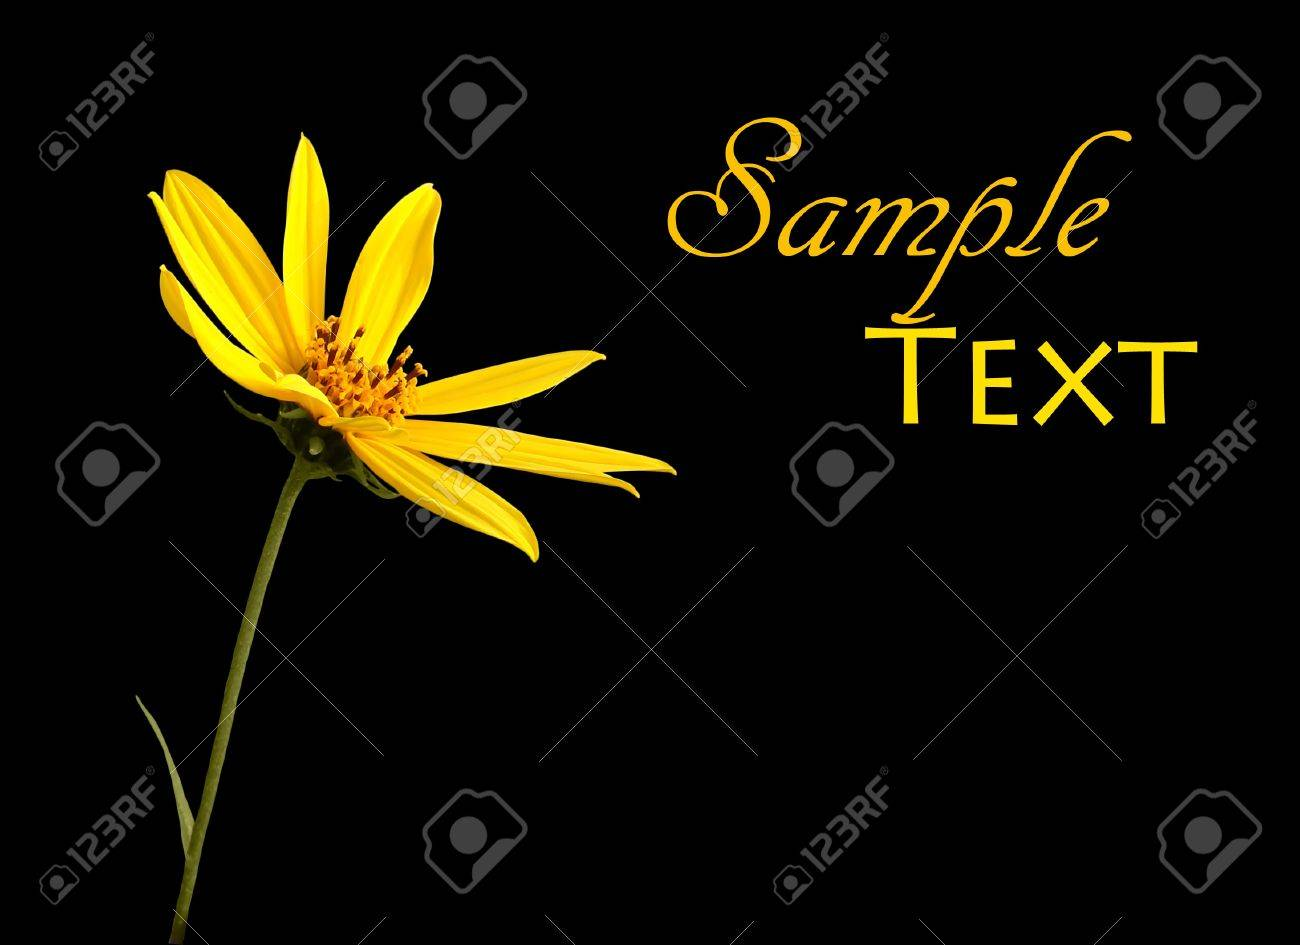 Single yellow flower on black background with copy space. Stock Photo - 9466270